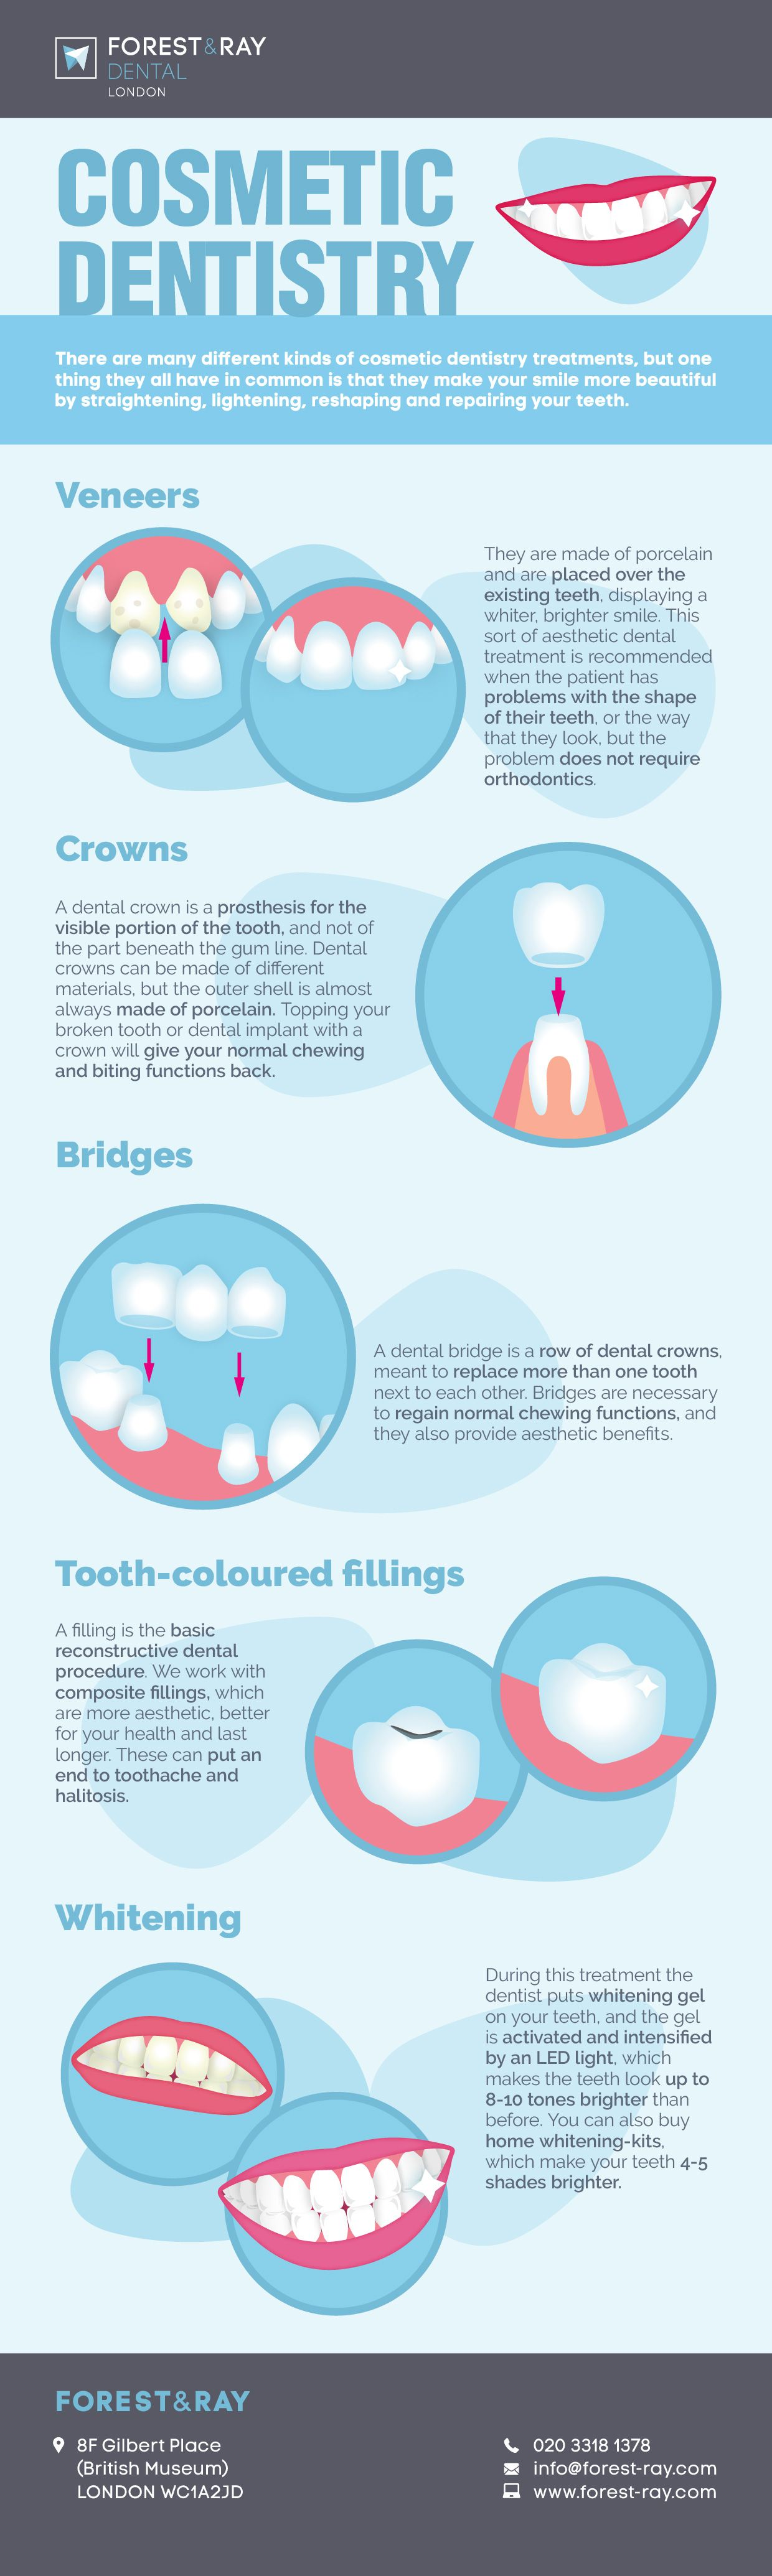 Cosmetic dentistry all cosmetic dental